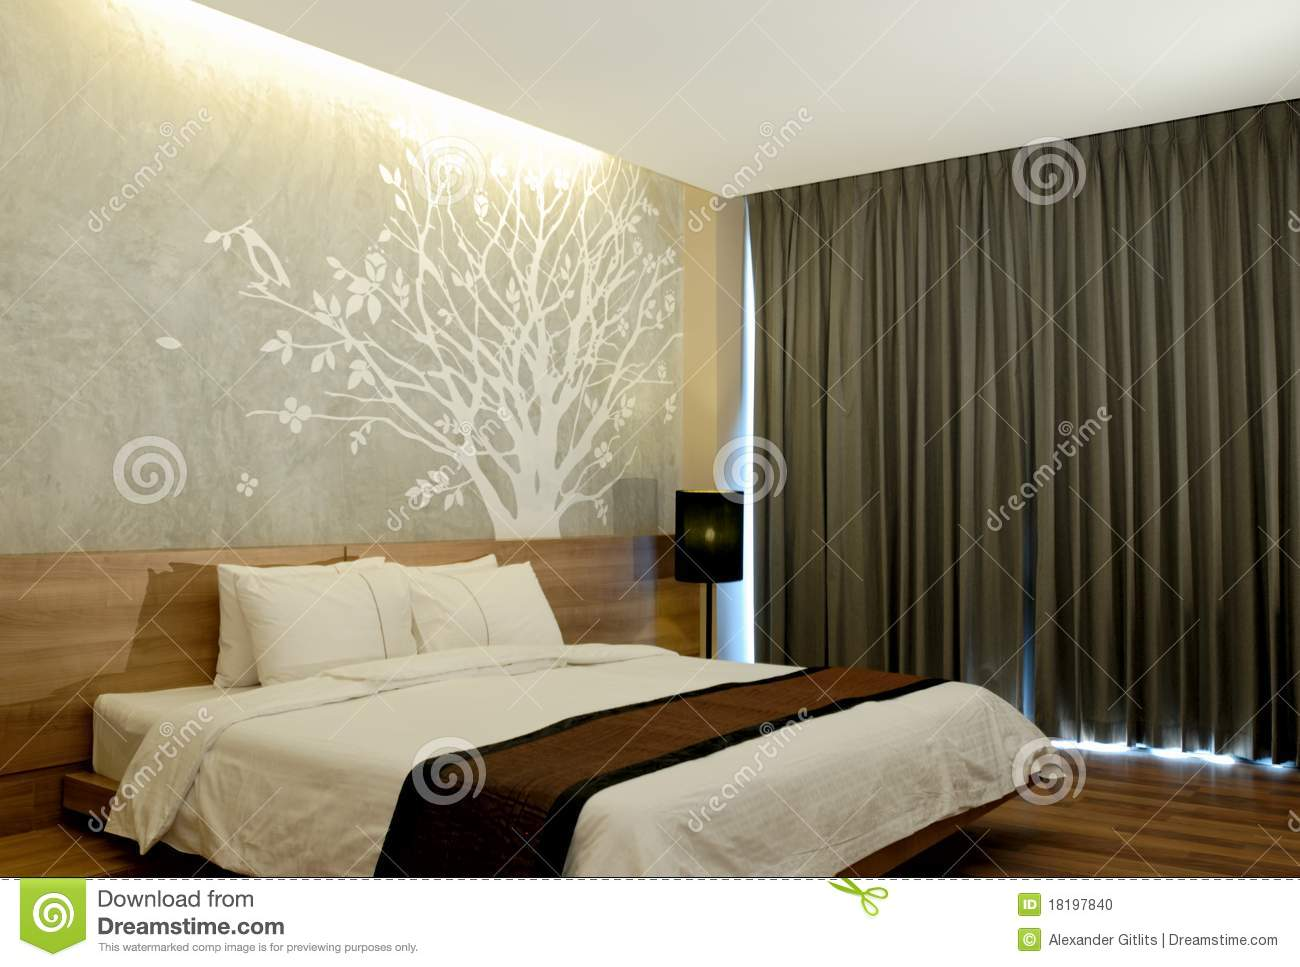 Modern hotel room interior stock photo image 18197840 - Hotel Interior Modern Night Room